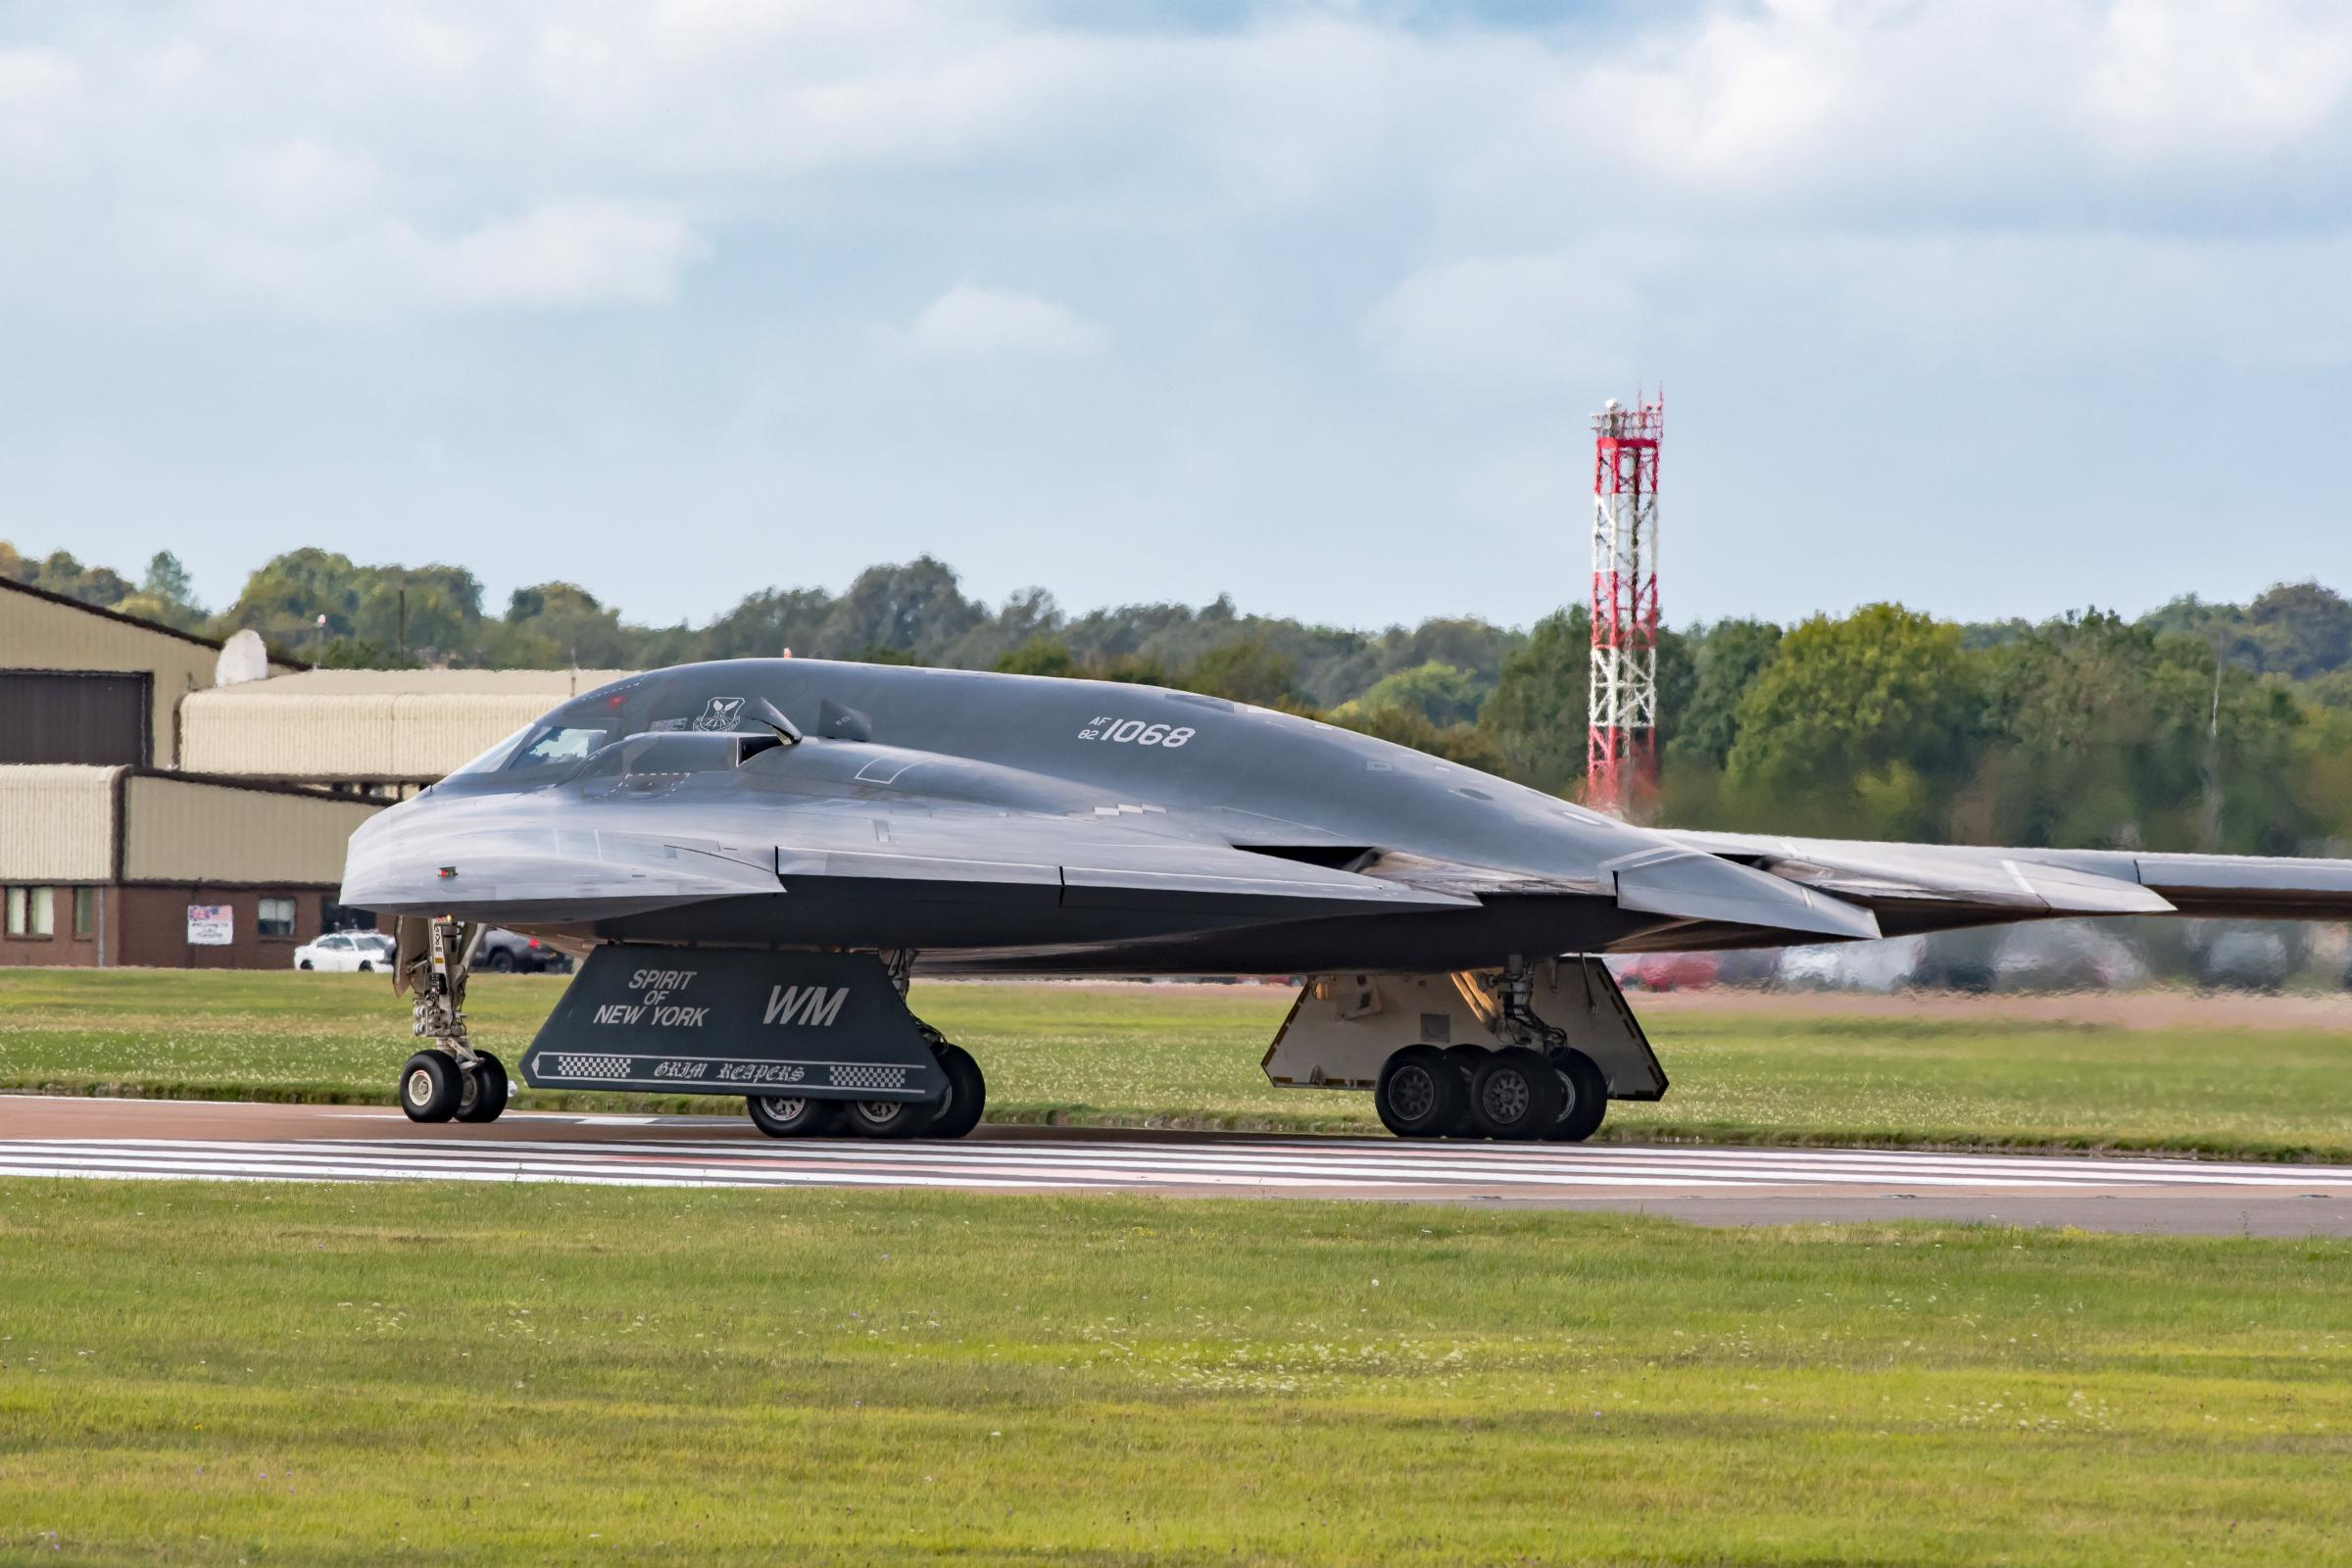 B-2 stealth bombers take over RAF Fairford